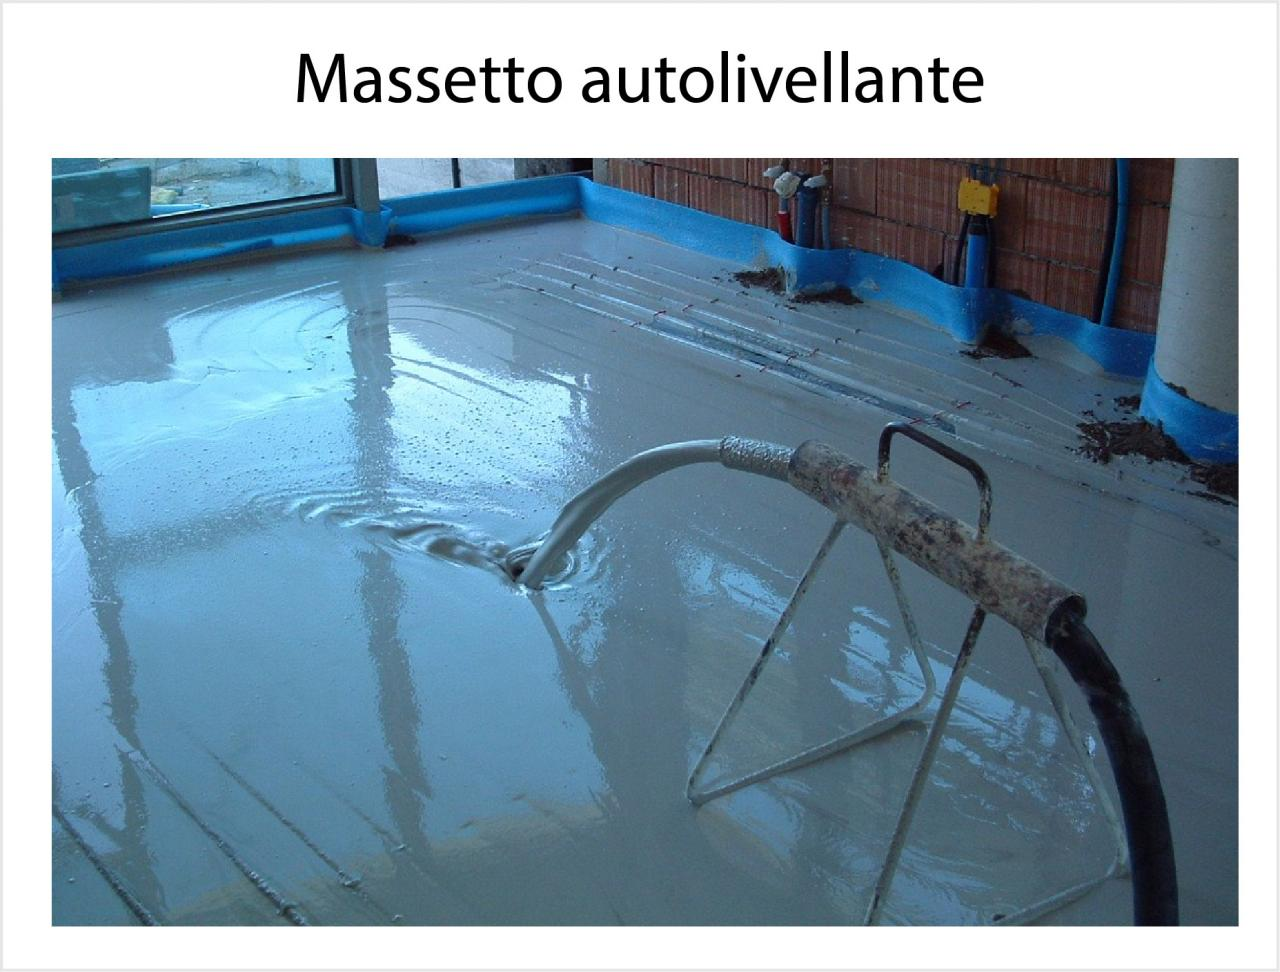 Massetto autolivellante